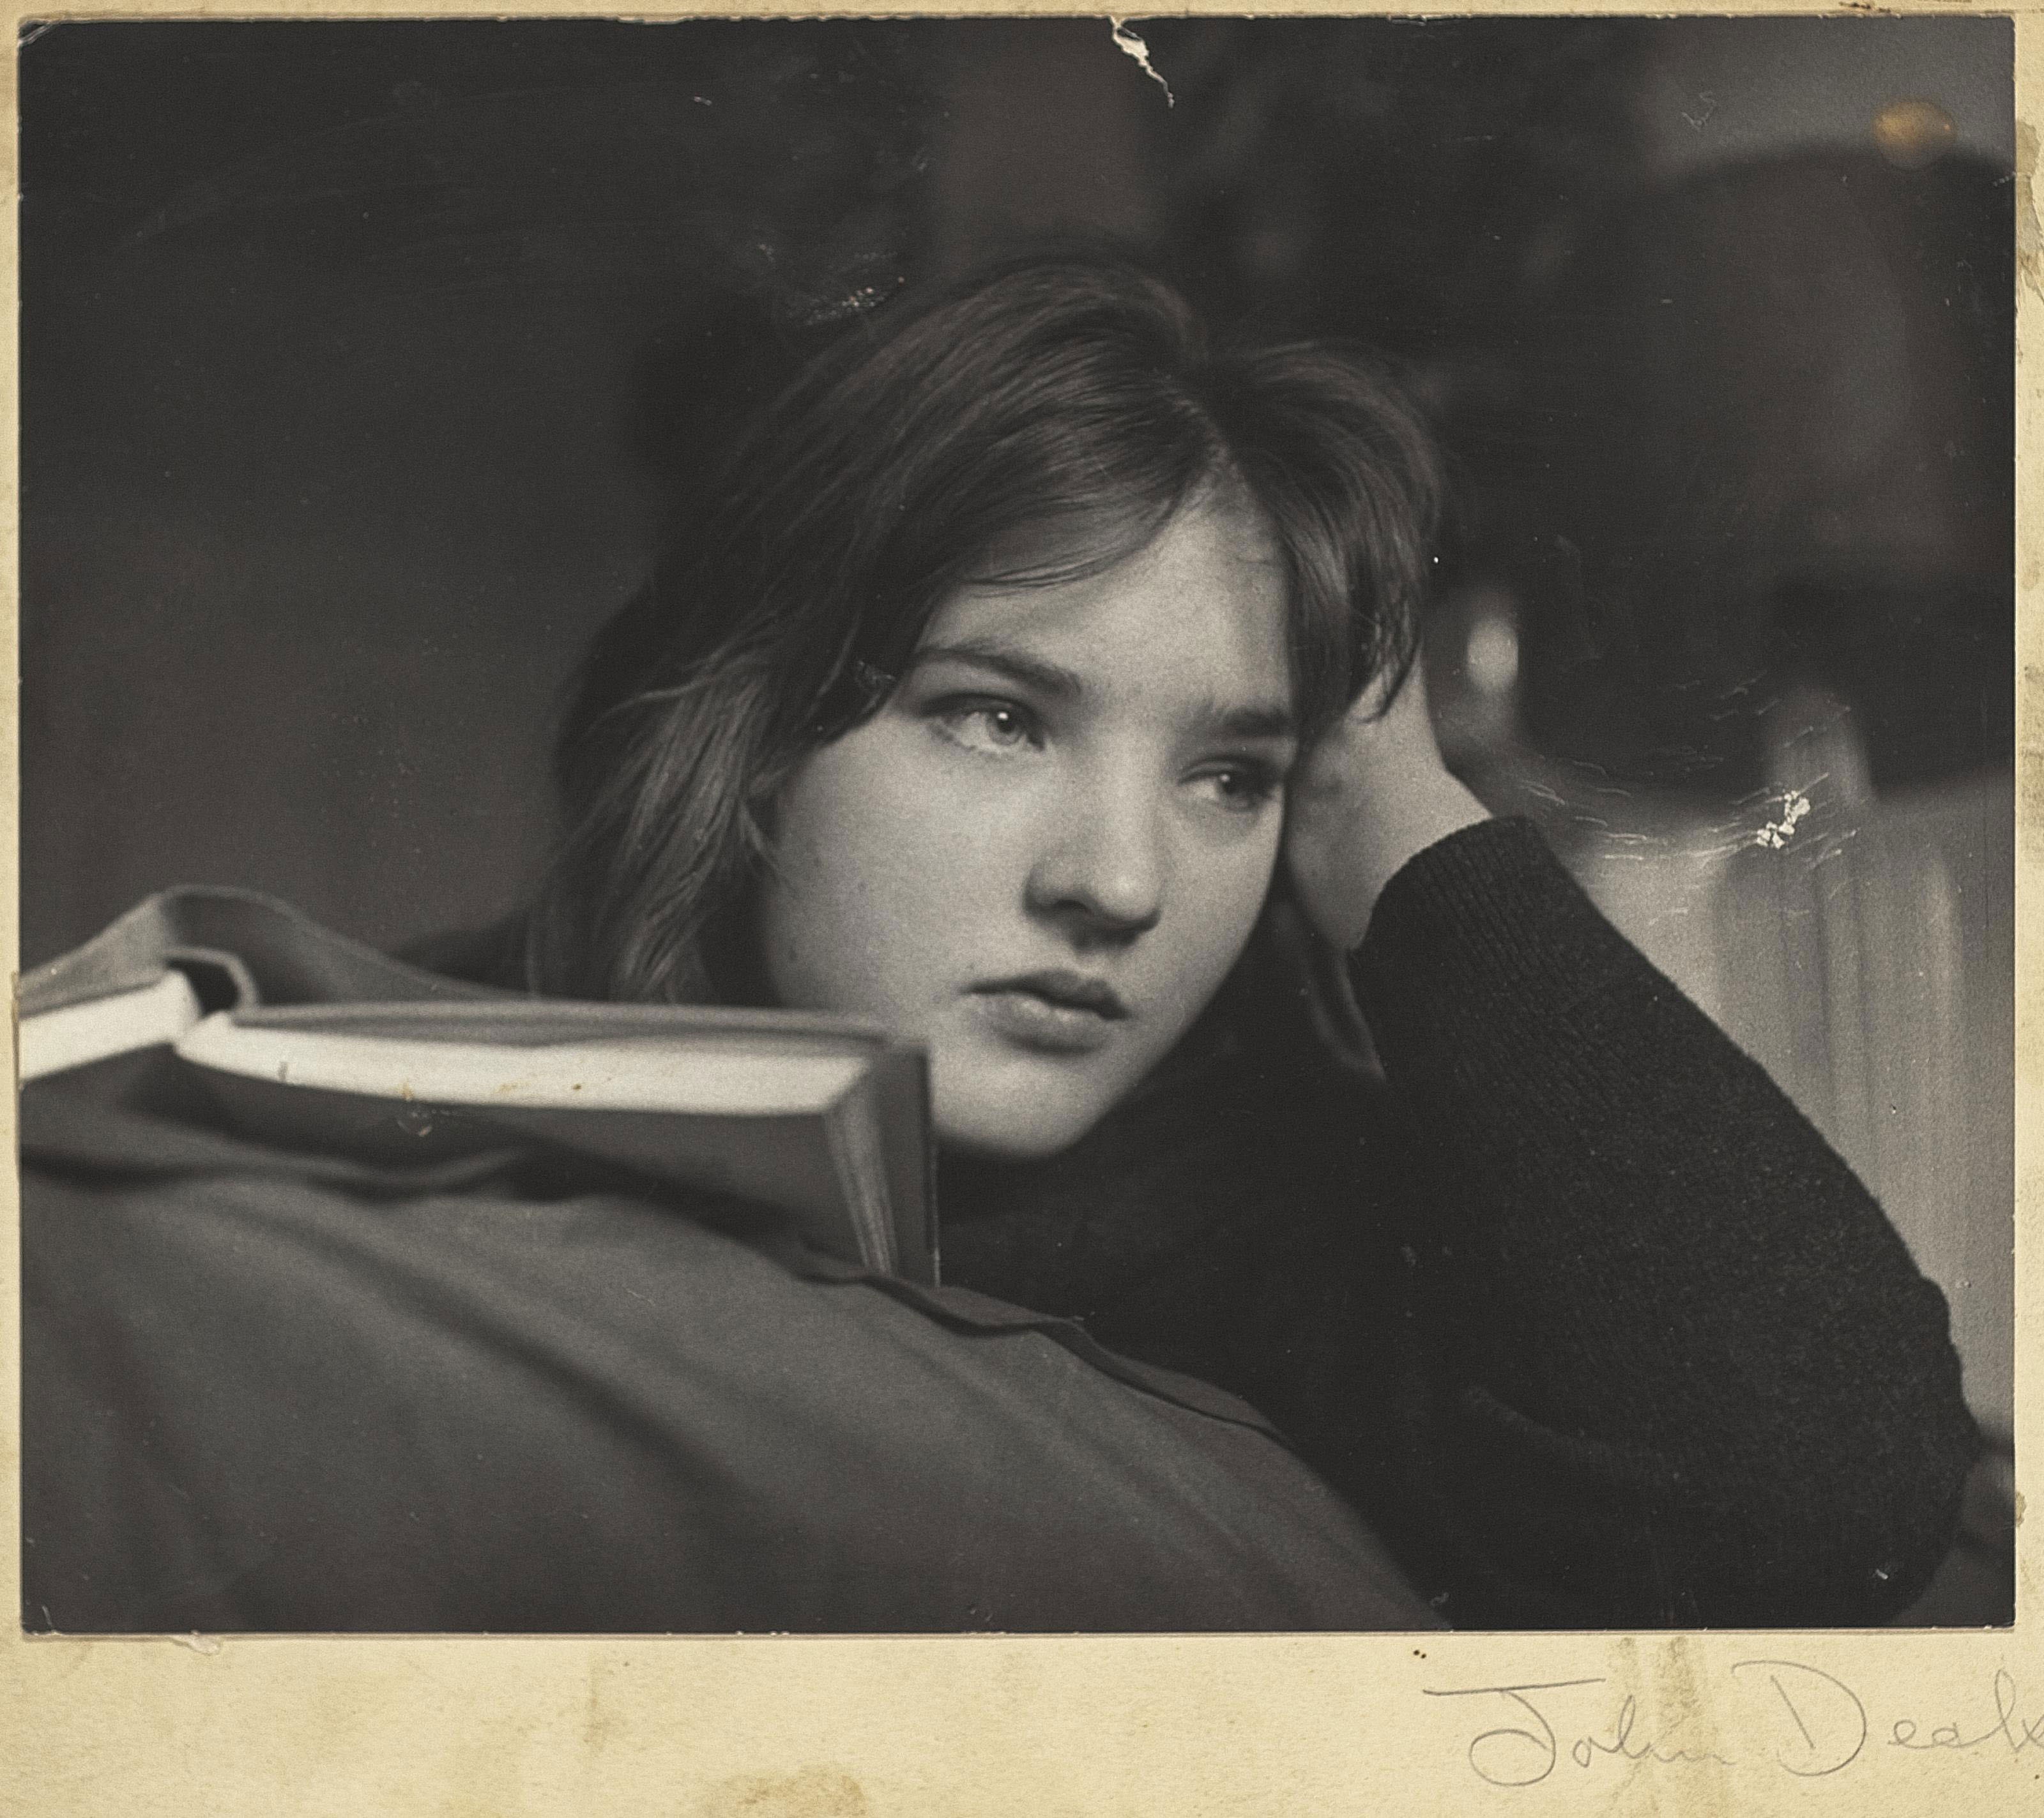 Portrait of Rosie Barker, from the feature 'Bored Teenagers' for About Town magazine, 1962